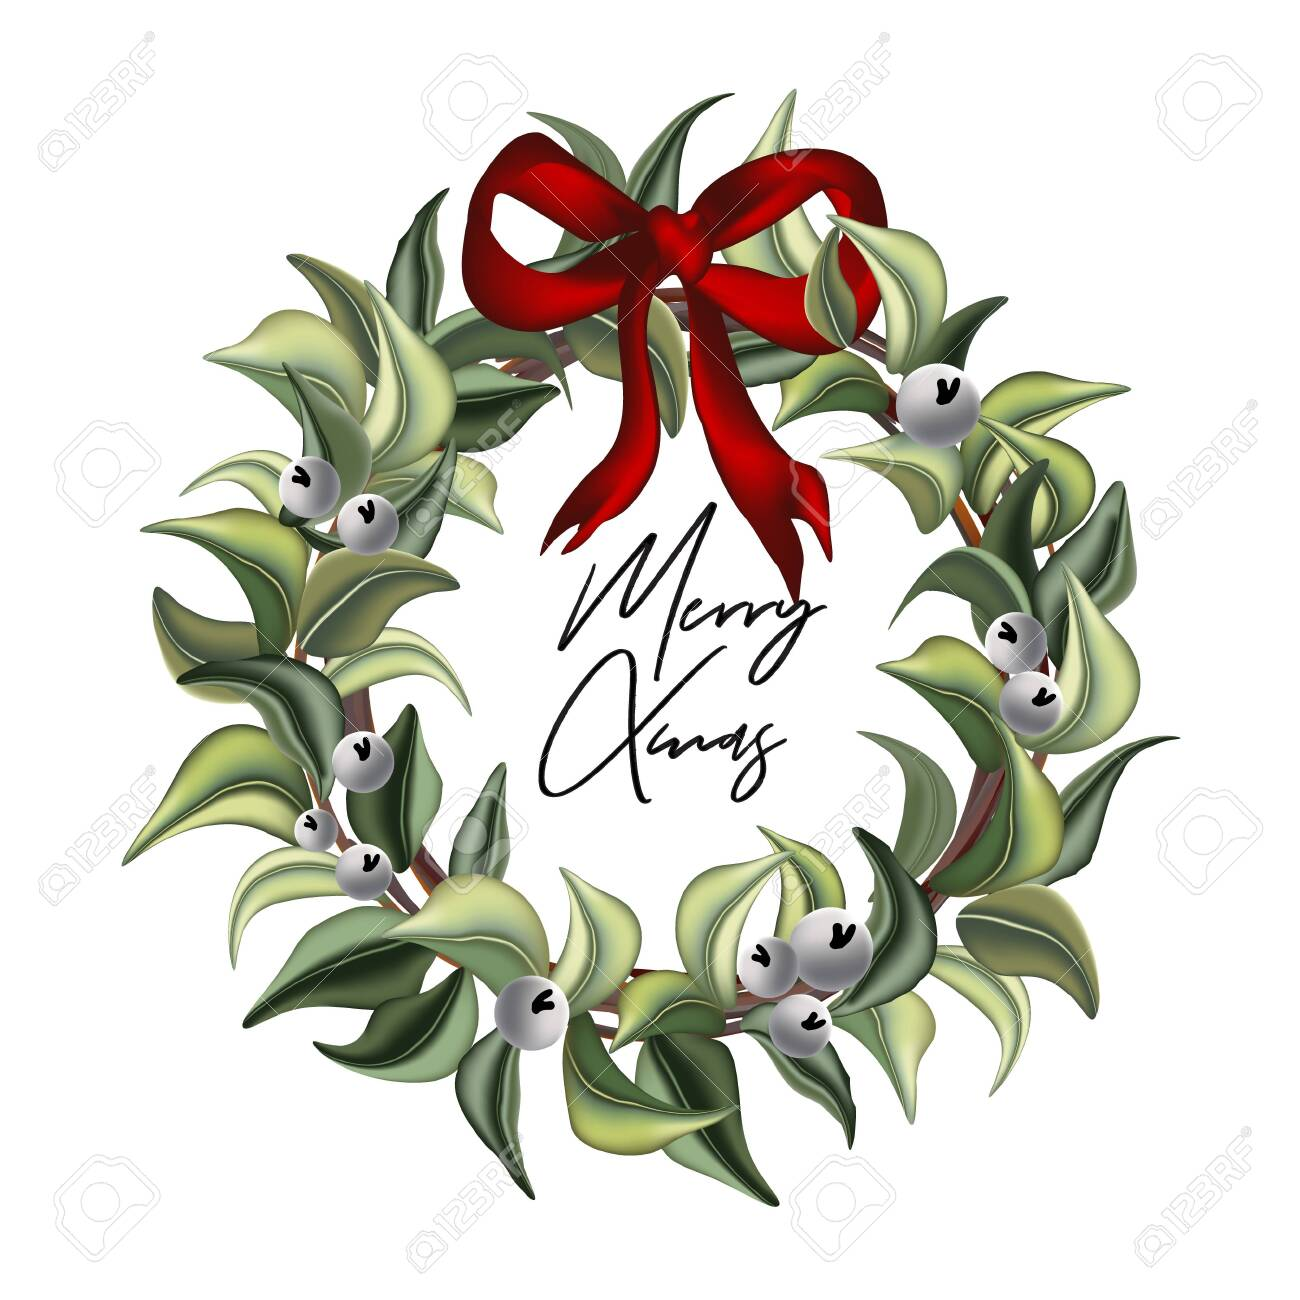 Merry Christmas Hand Drawn Watercolor Leaves Of Evergreen Winter Royalty Free Cliparts Vectors And Stock Illustration Image 130588465